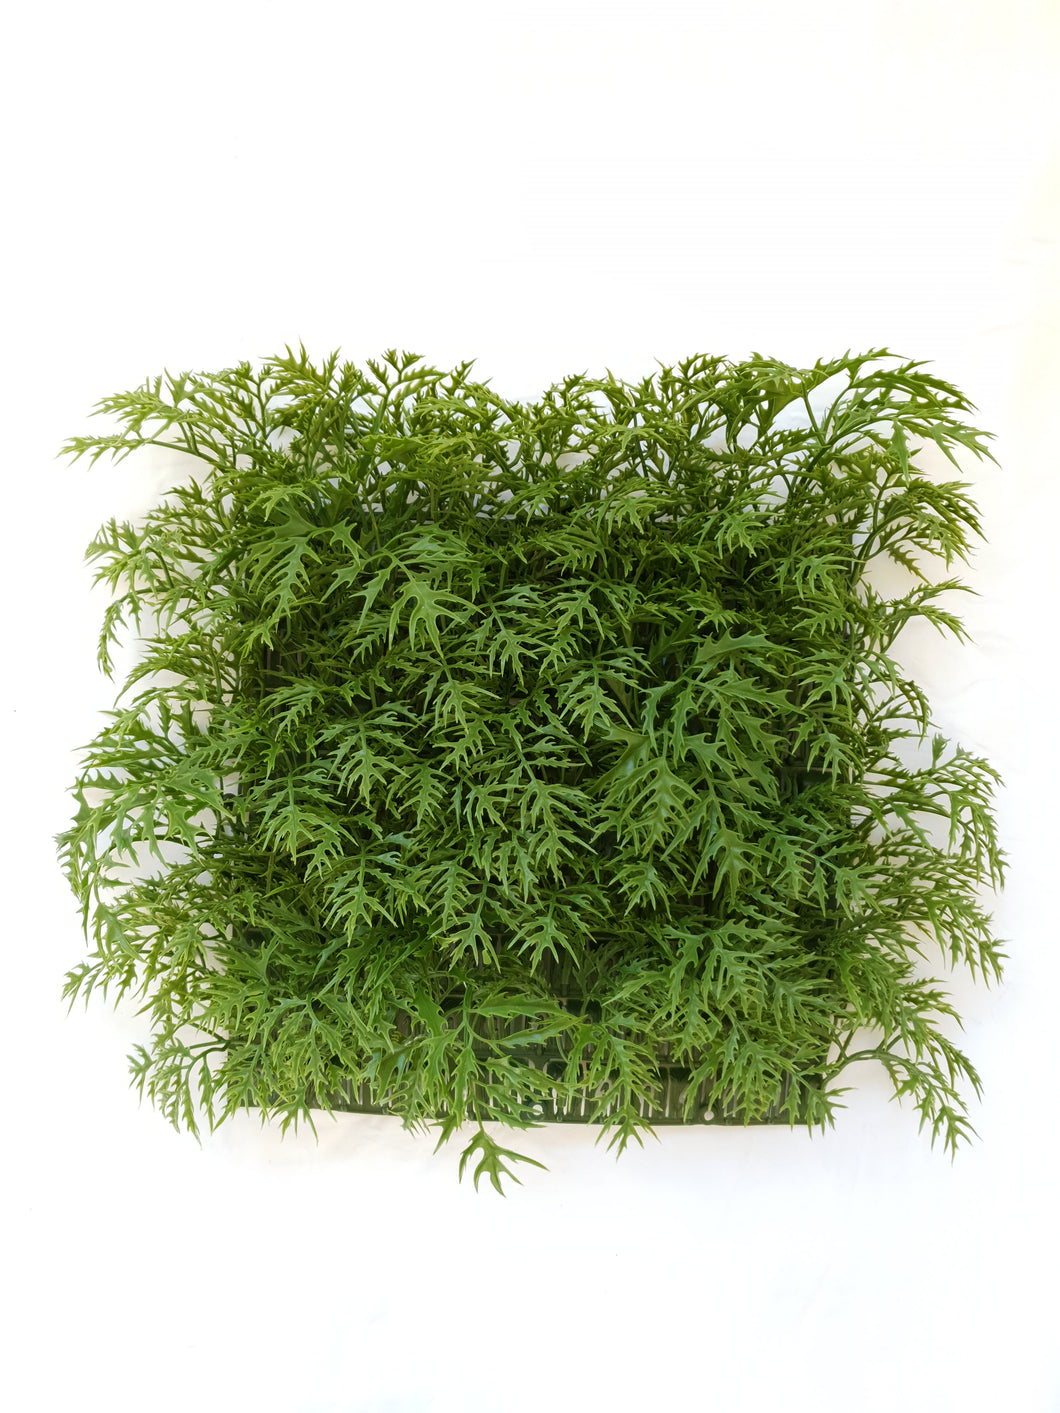 Green Ming Aralia Tile